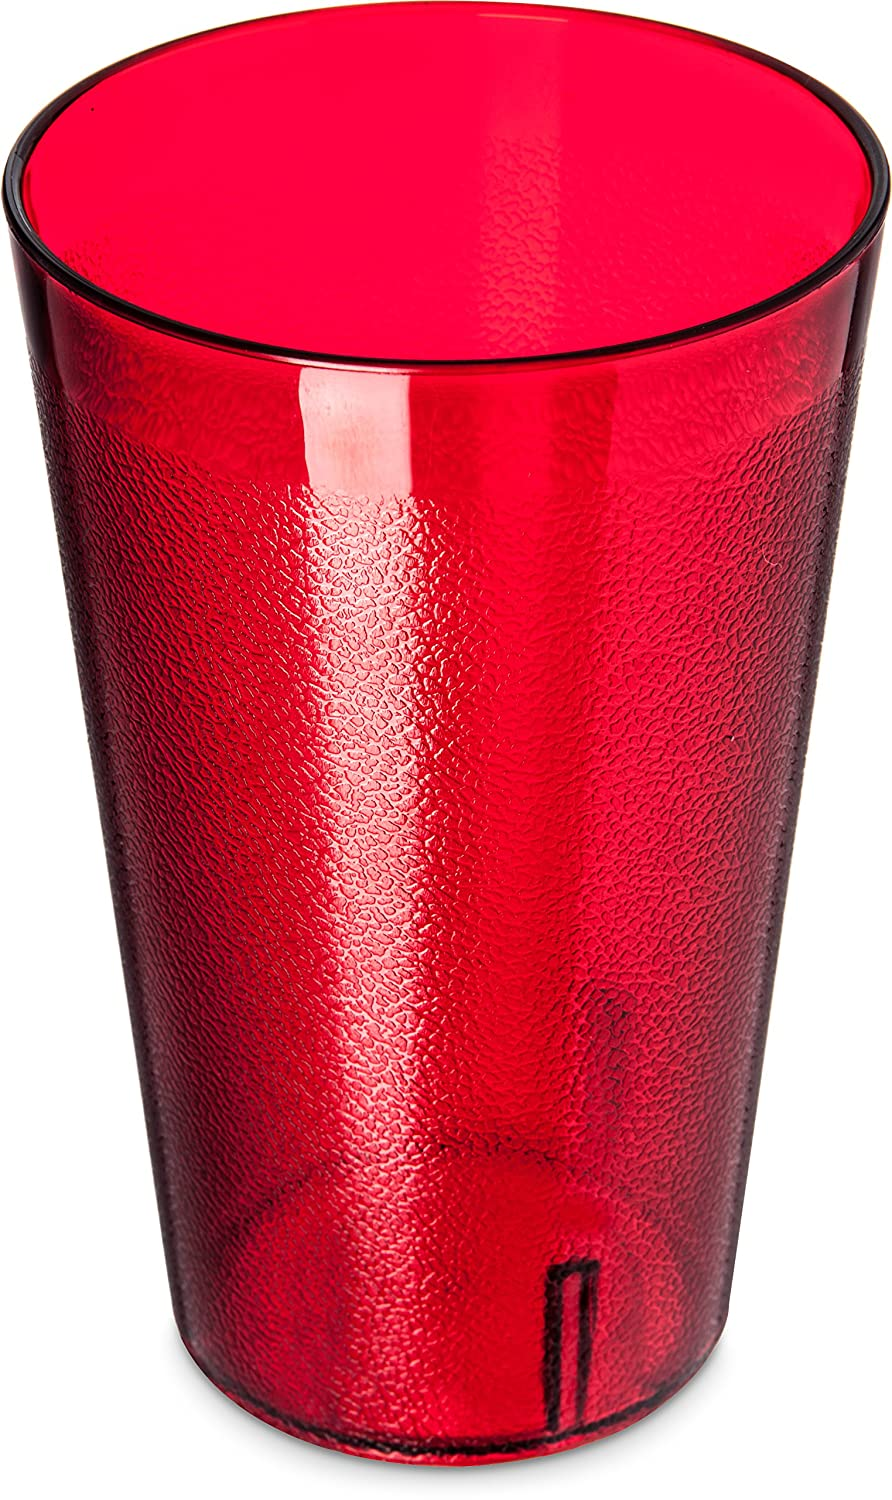 Carlisle 5232-8110 Stackable SAN Tumbler, 32 oz, Ruby (Pack of 3) Carlisle - Eaches